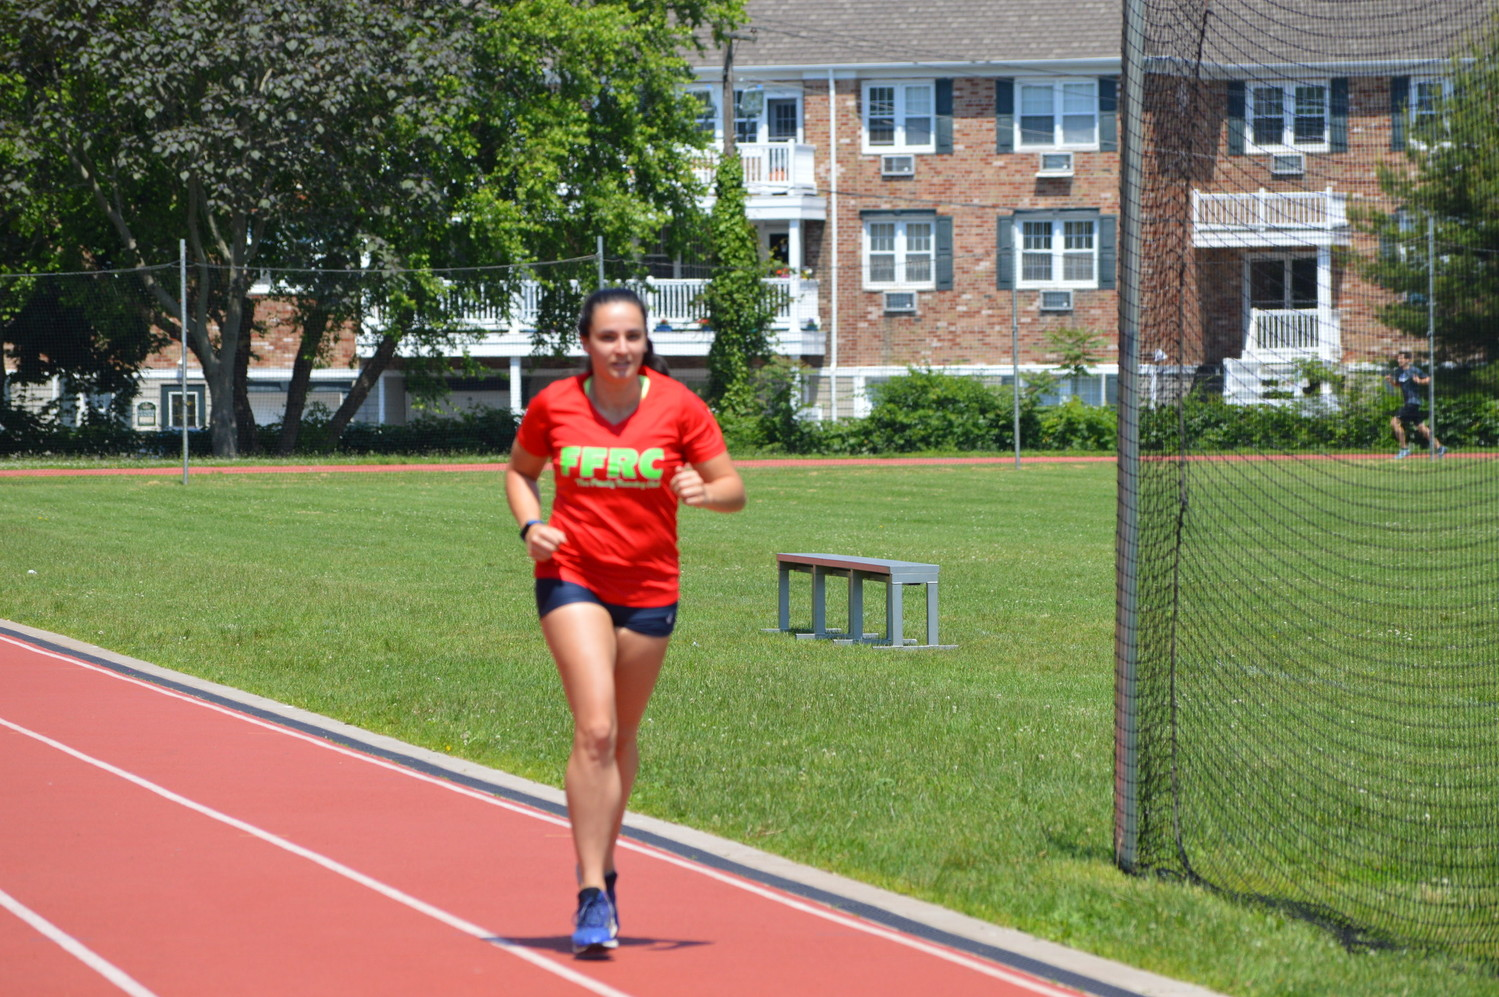 Rose Paskoff, a Lynbrook All-County athlete in 2013, finished the 400-meter race.